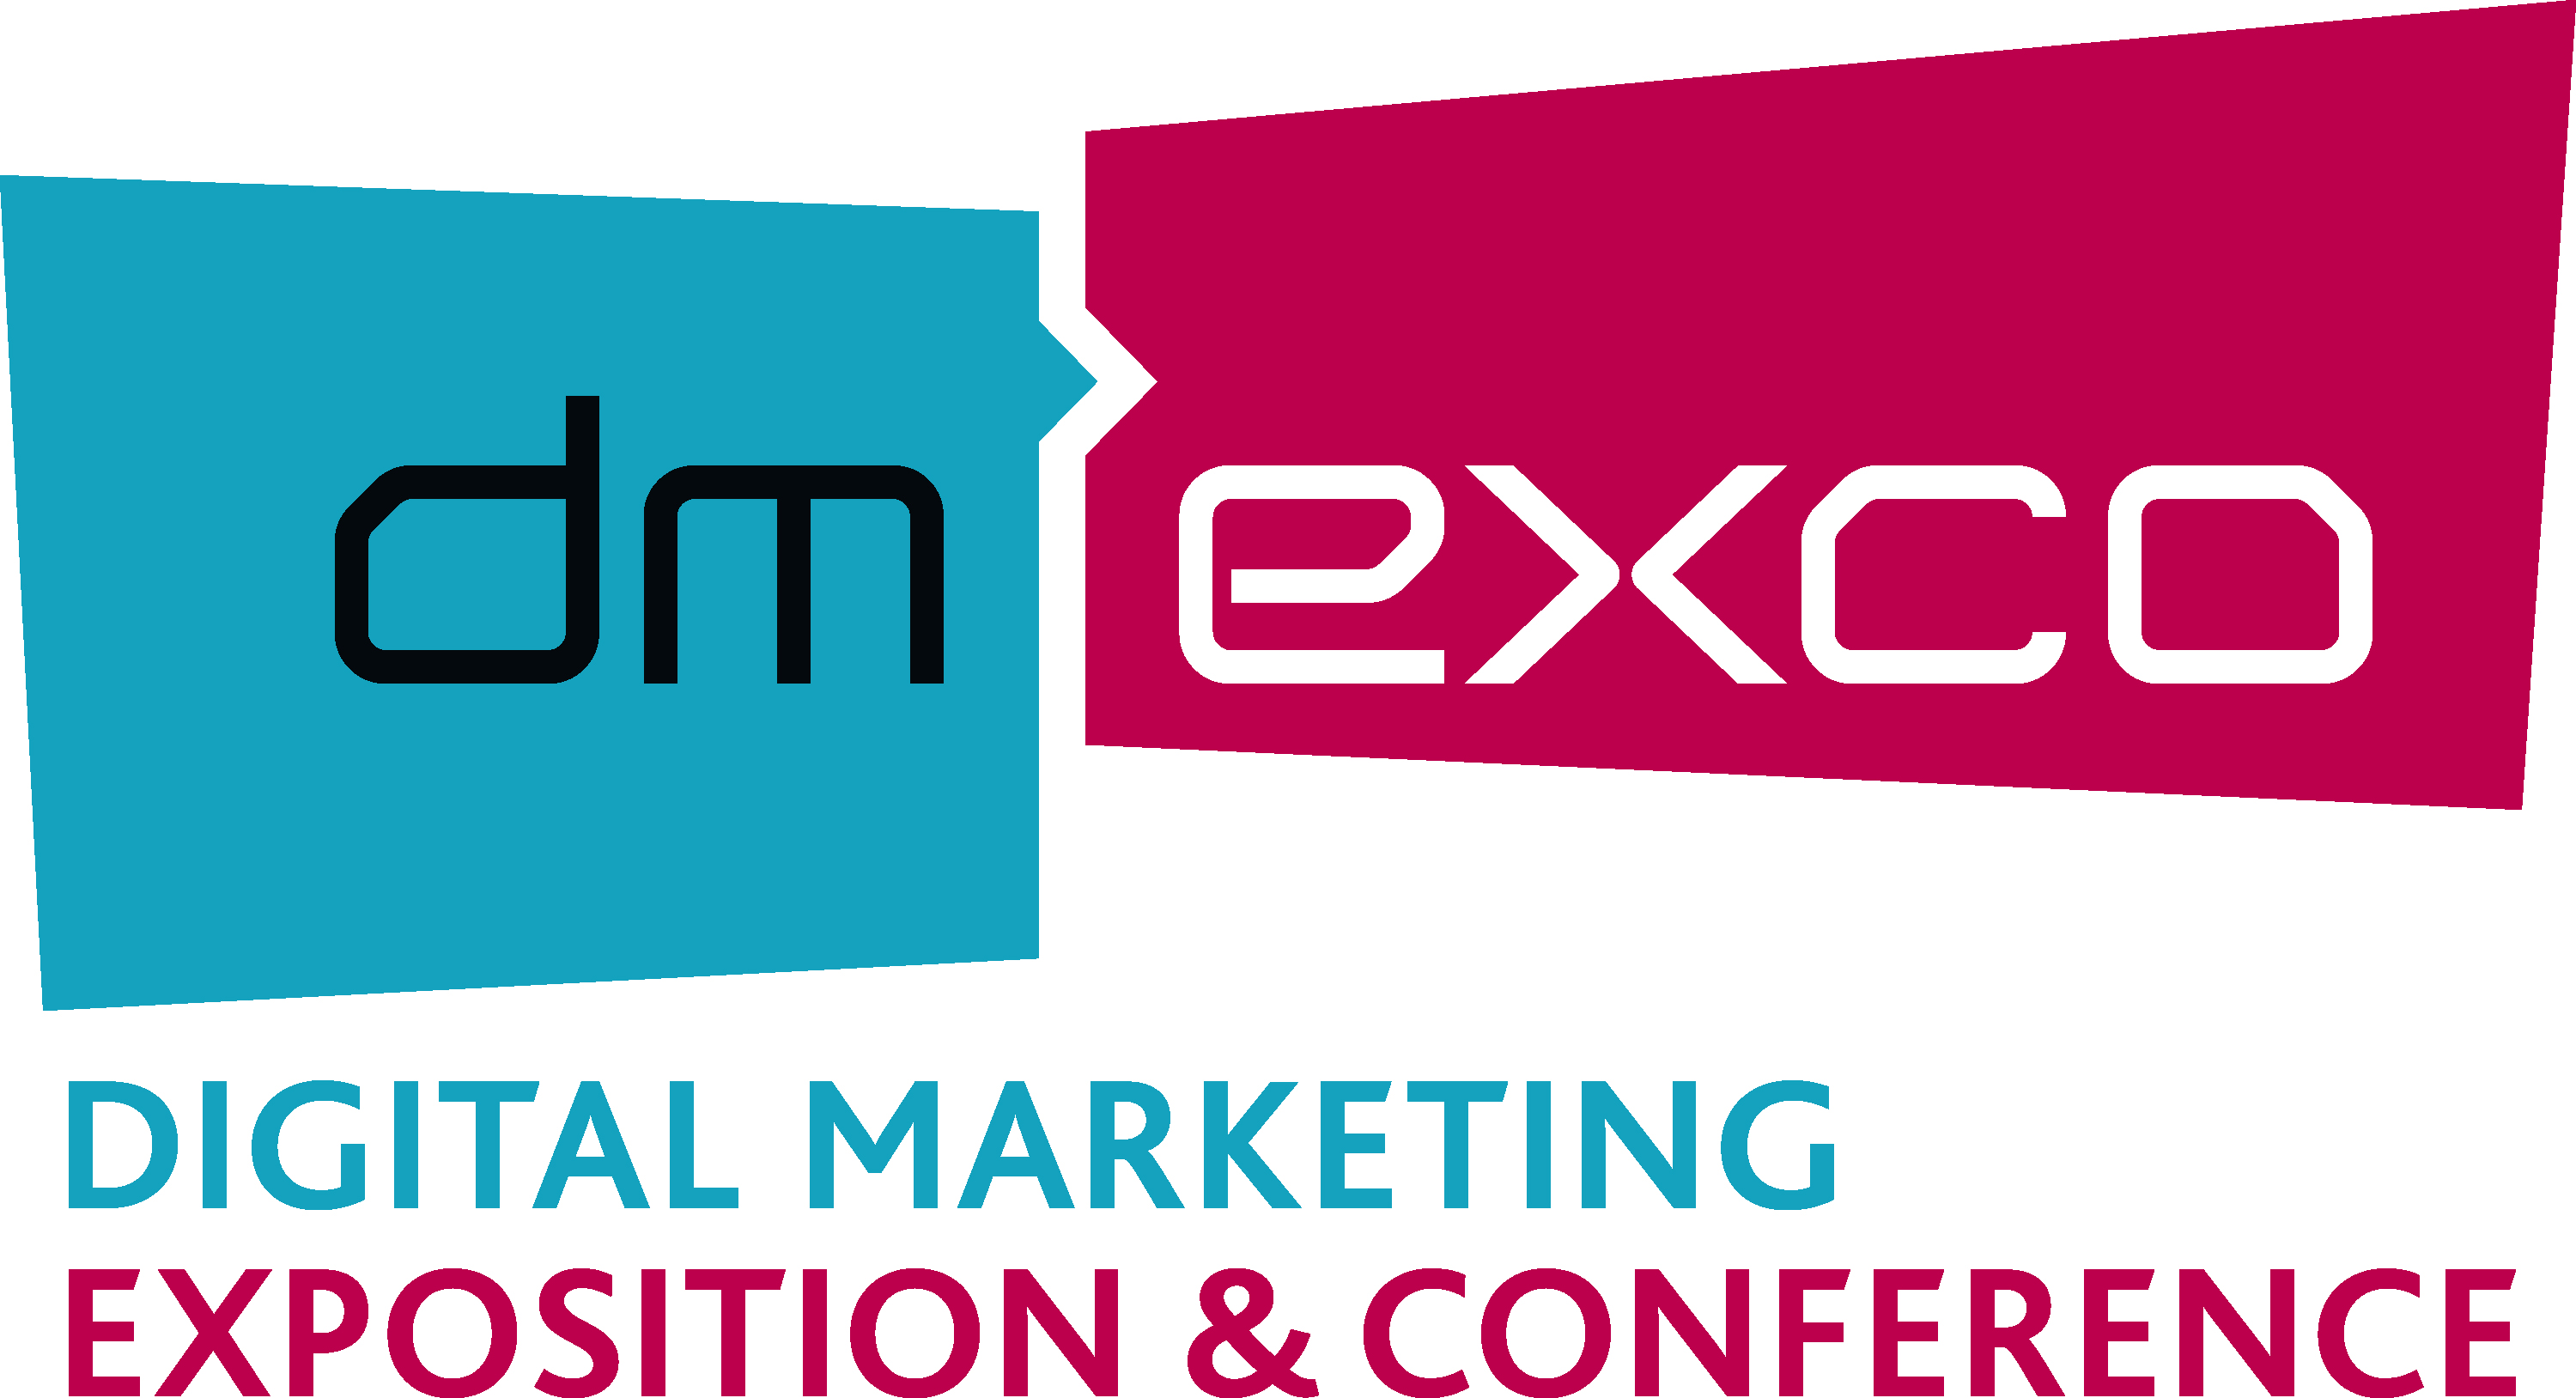 DM Exco Digital Marketing Exposition & Conference